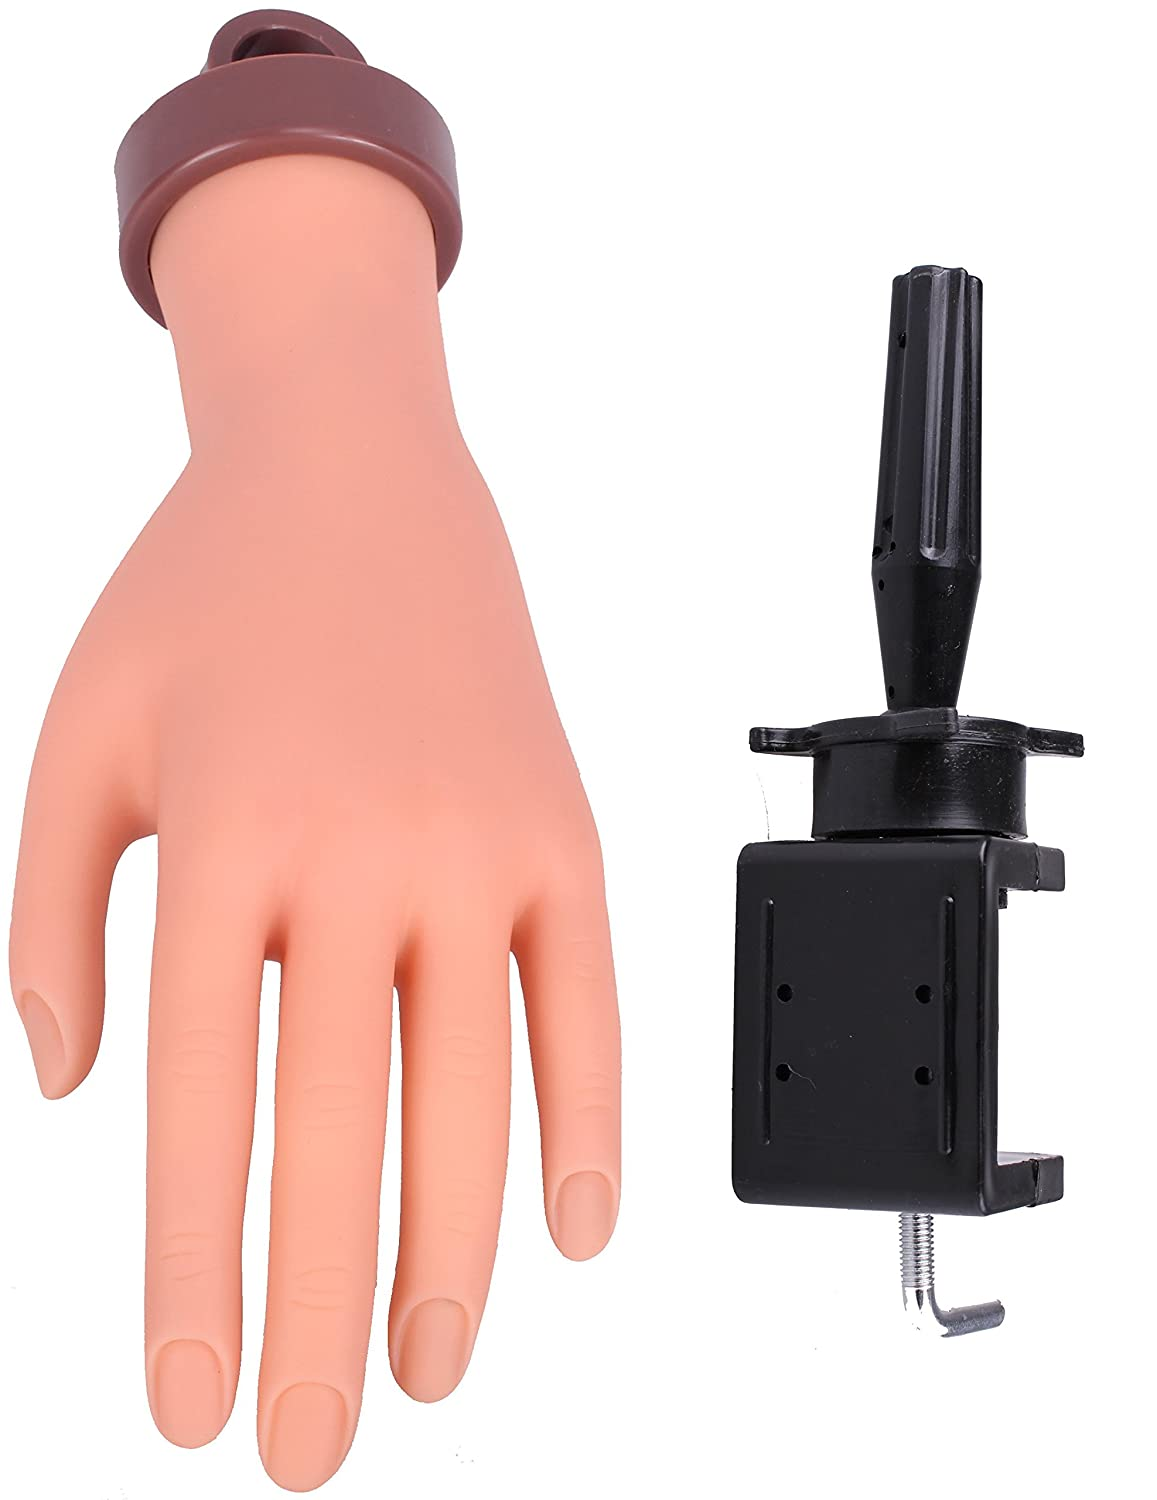 Lian's Flexible Soft Rubber Mannequin Model Hand Nail Art Practice/Trainning/Display with Free Clamp LSHB